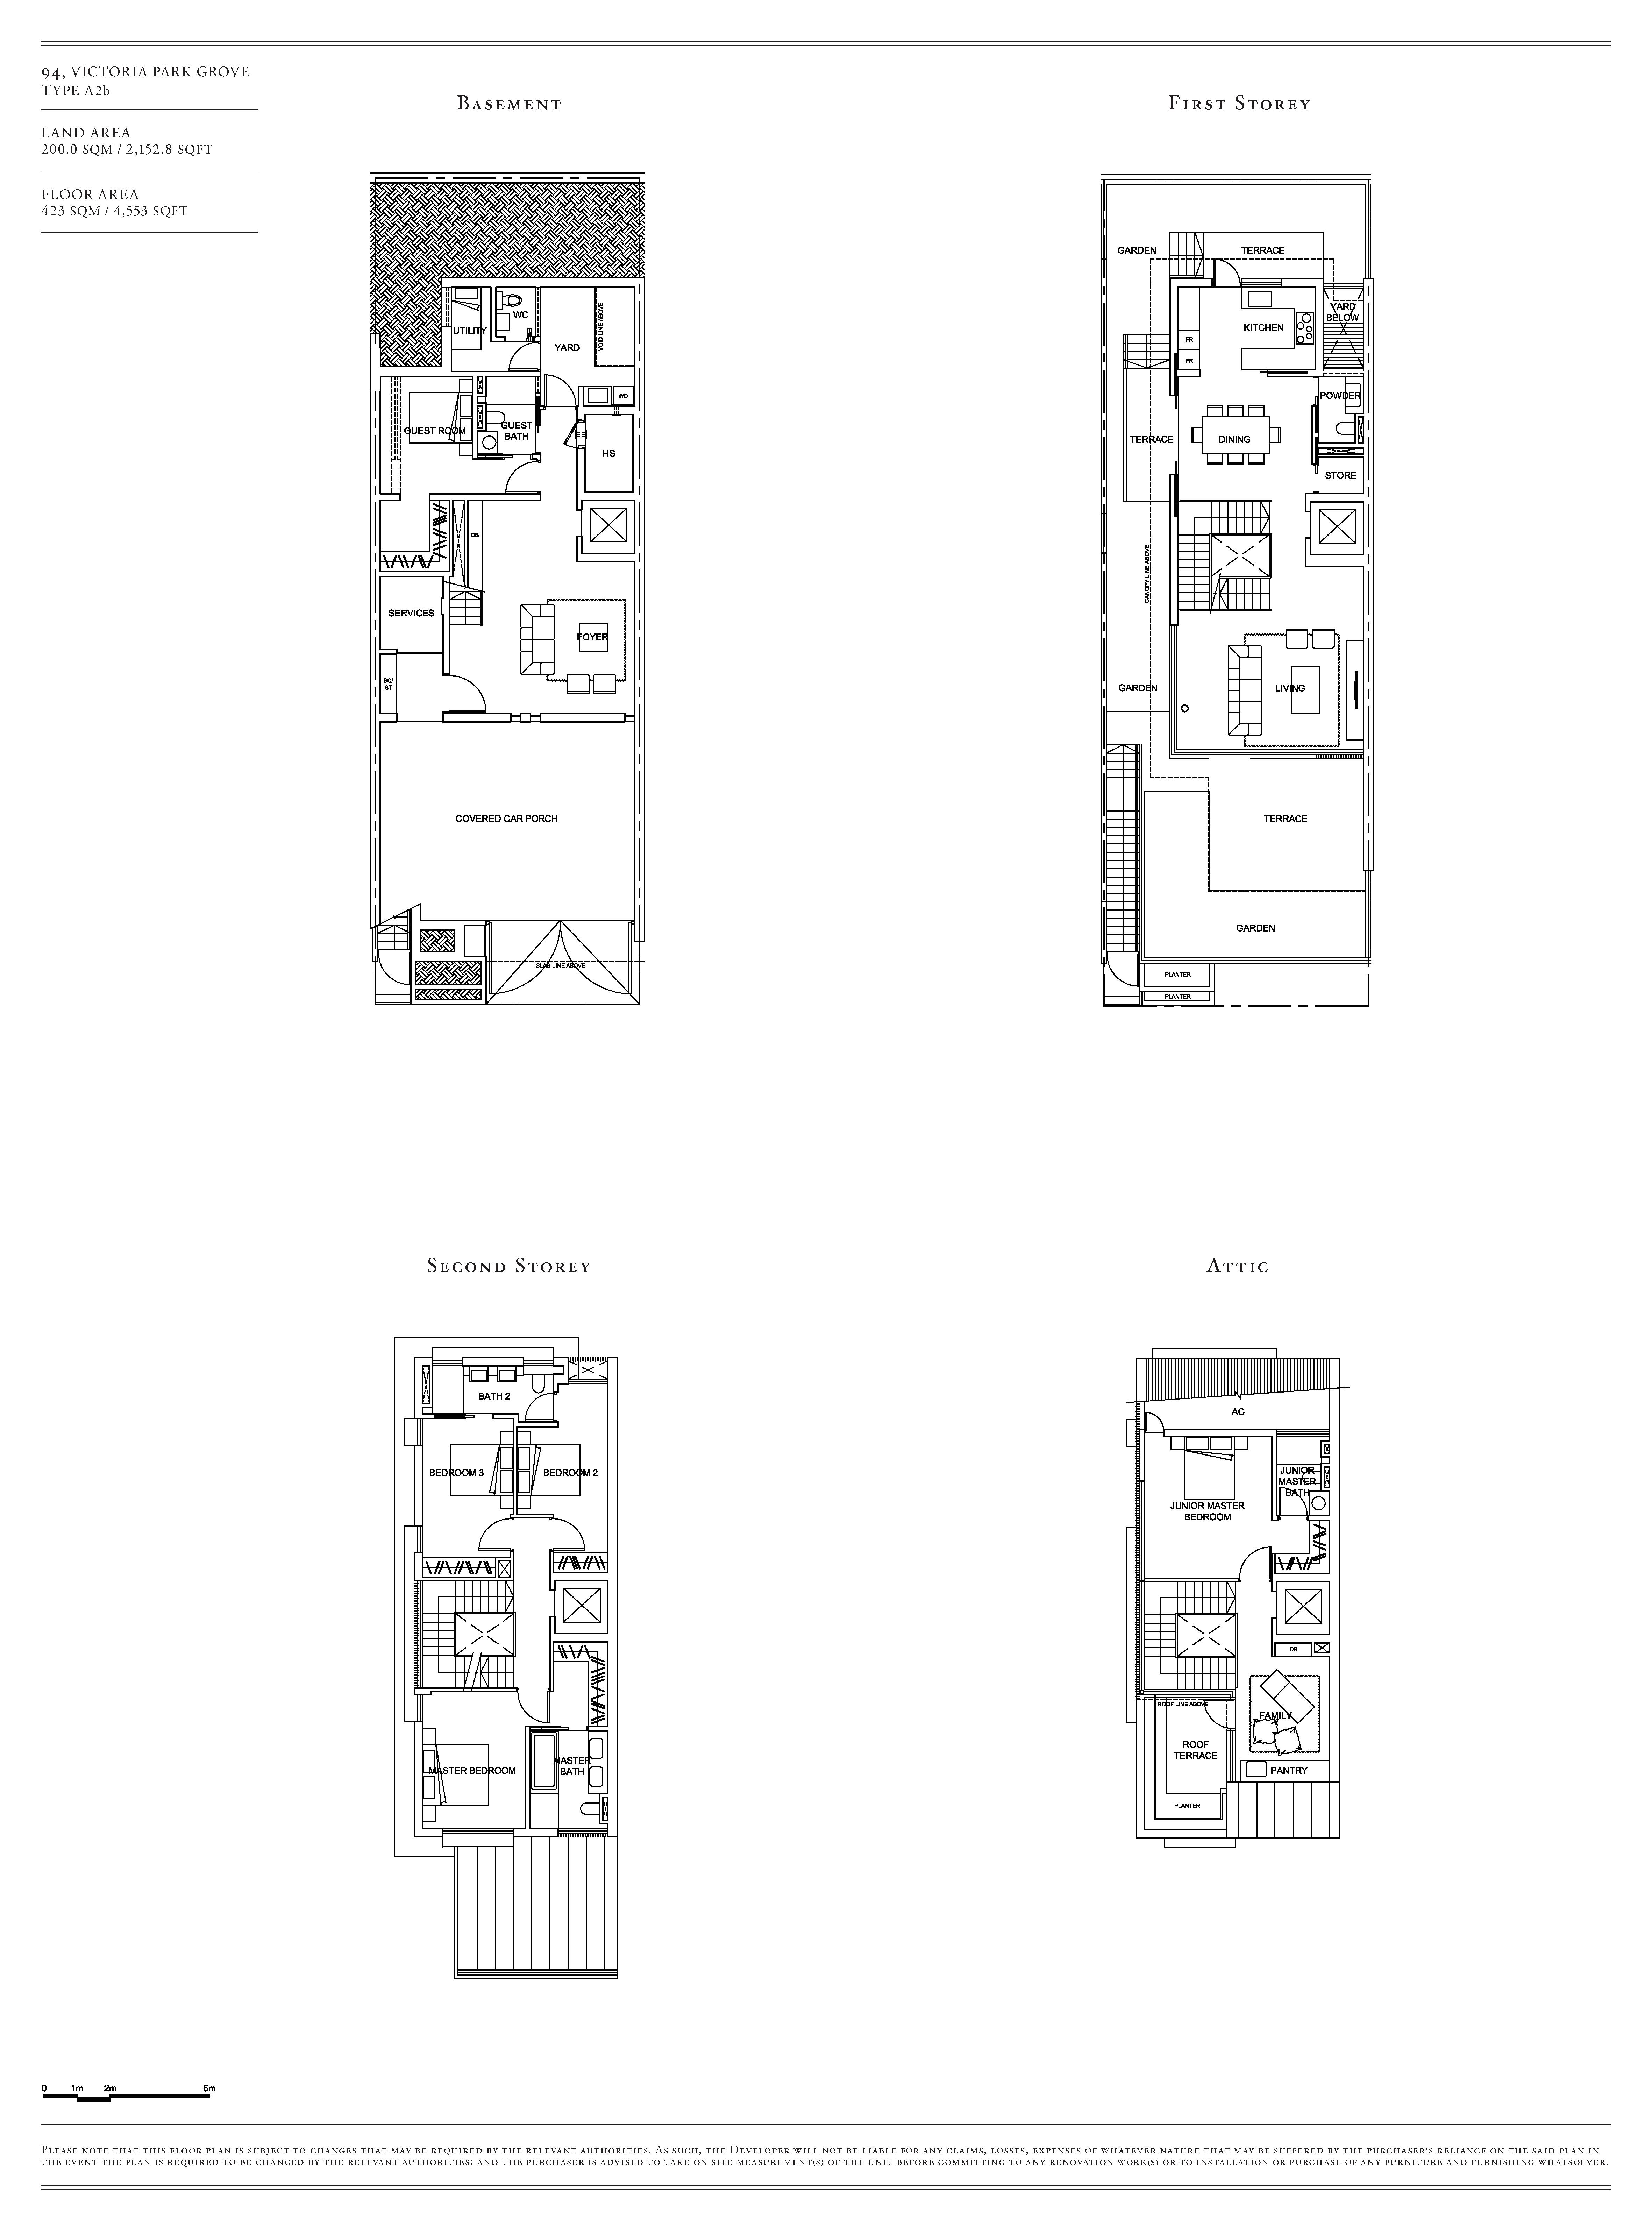 Victoria Park Villas House 94 Type A2b Floor Plans